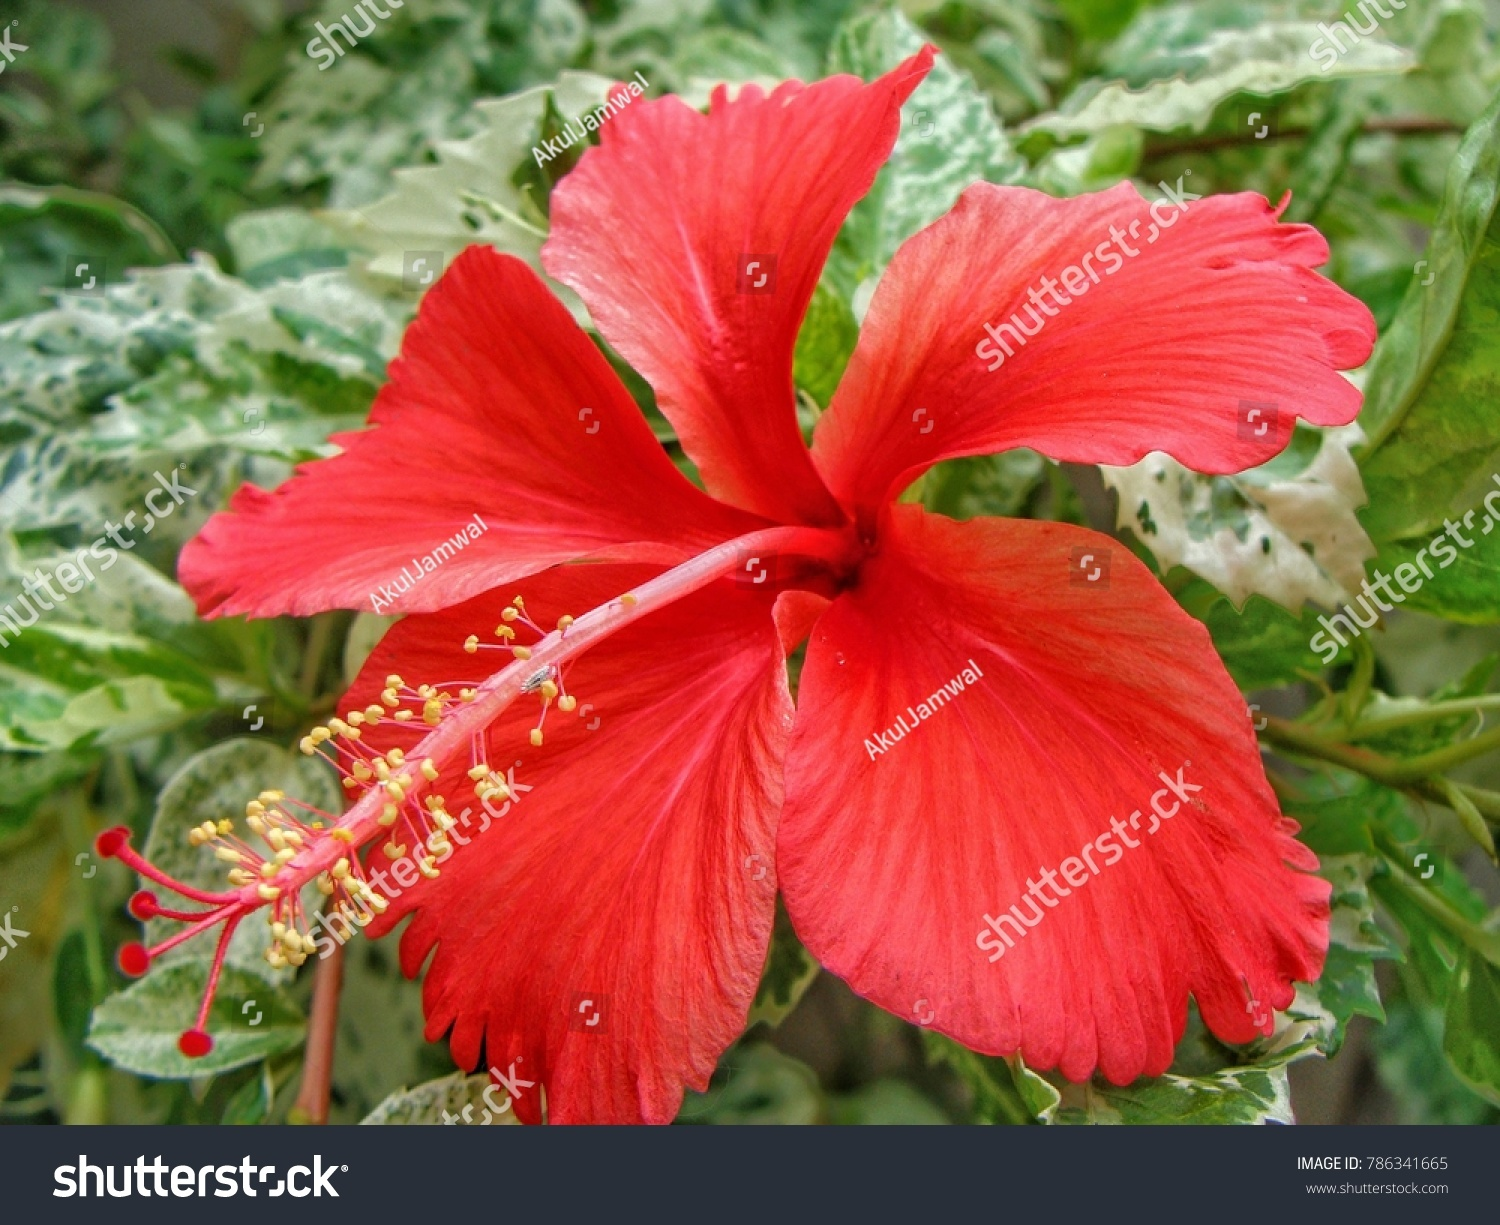 Red china rose flower known shoeblackplant stock photo royalty free red china rose flower also known as shoeblackplant scientific name hibiscus rosa sinensis izmirmasajfo Image collections